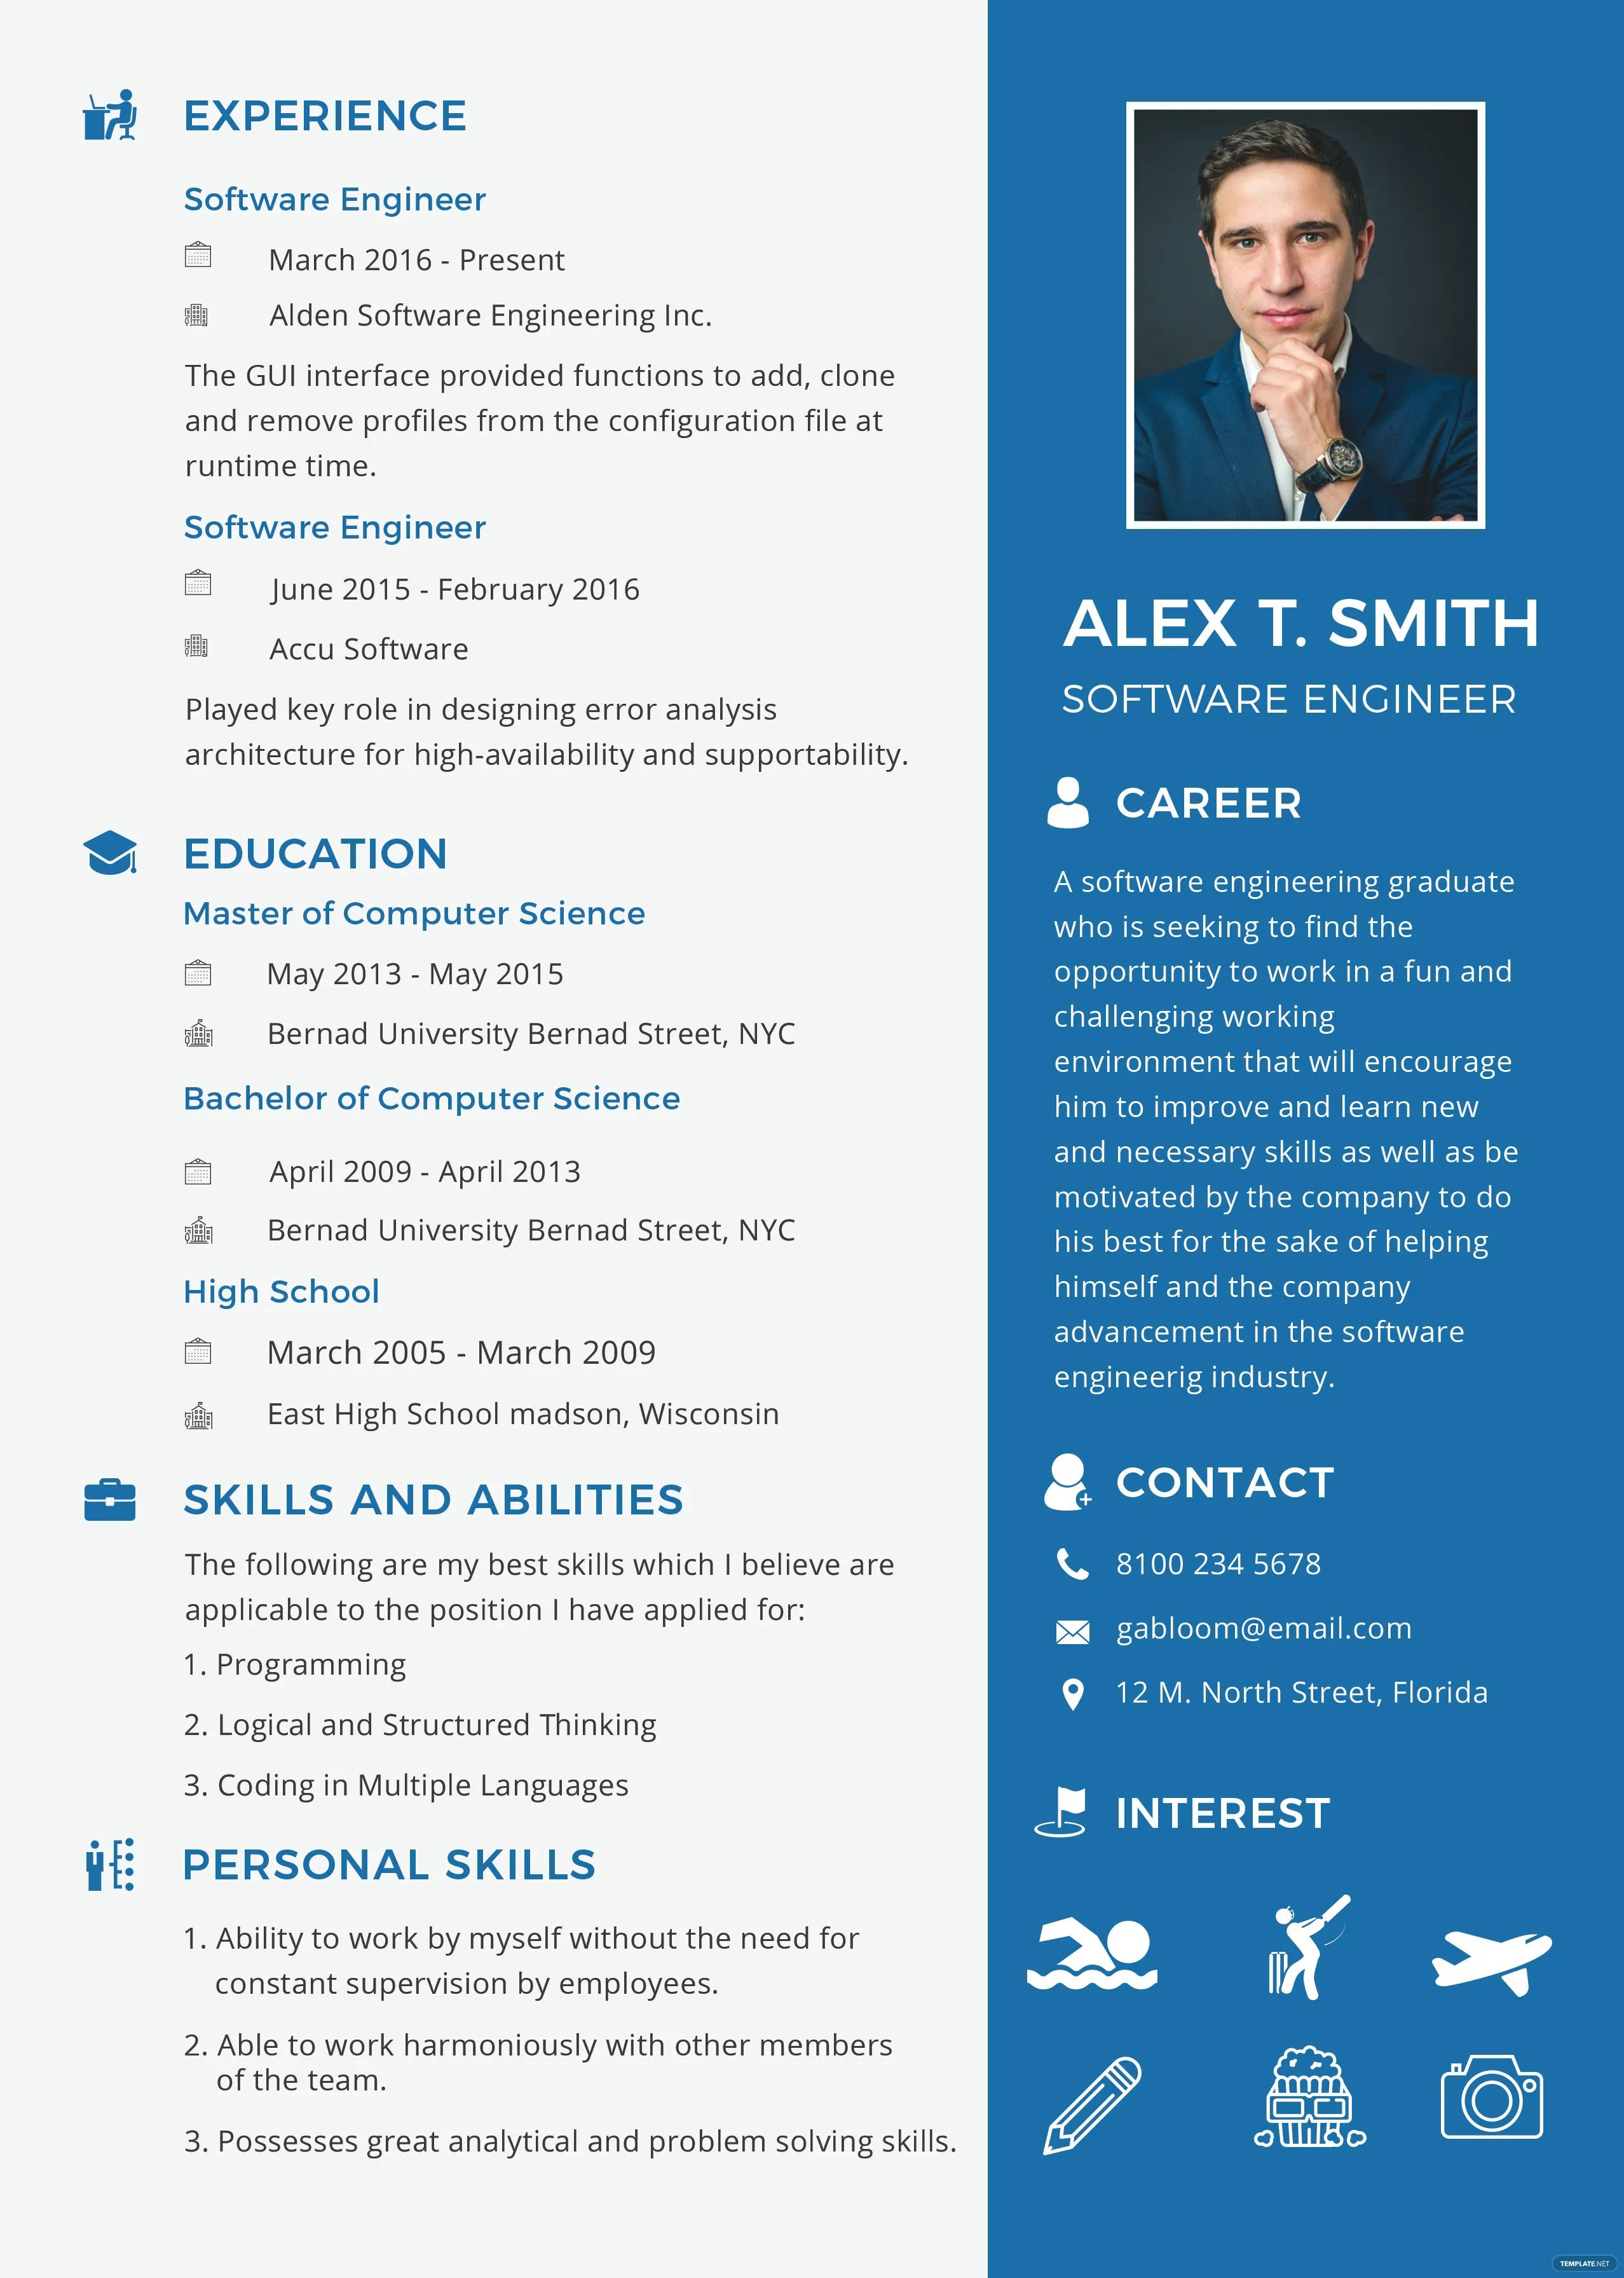 Software Engineer Fresher Resume Free Resume And Cv For Software Engineer Fresher Template